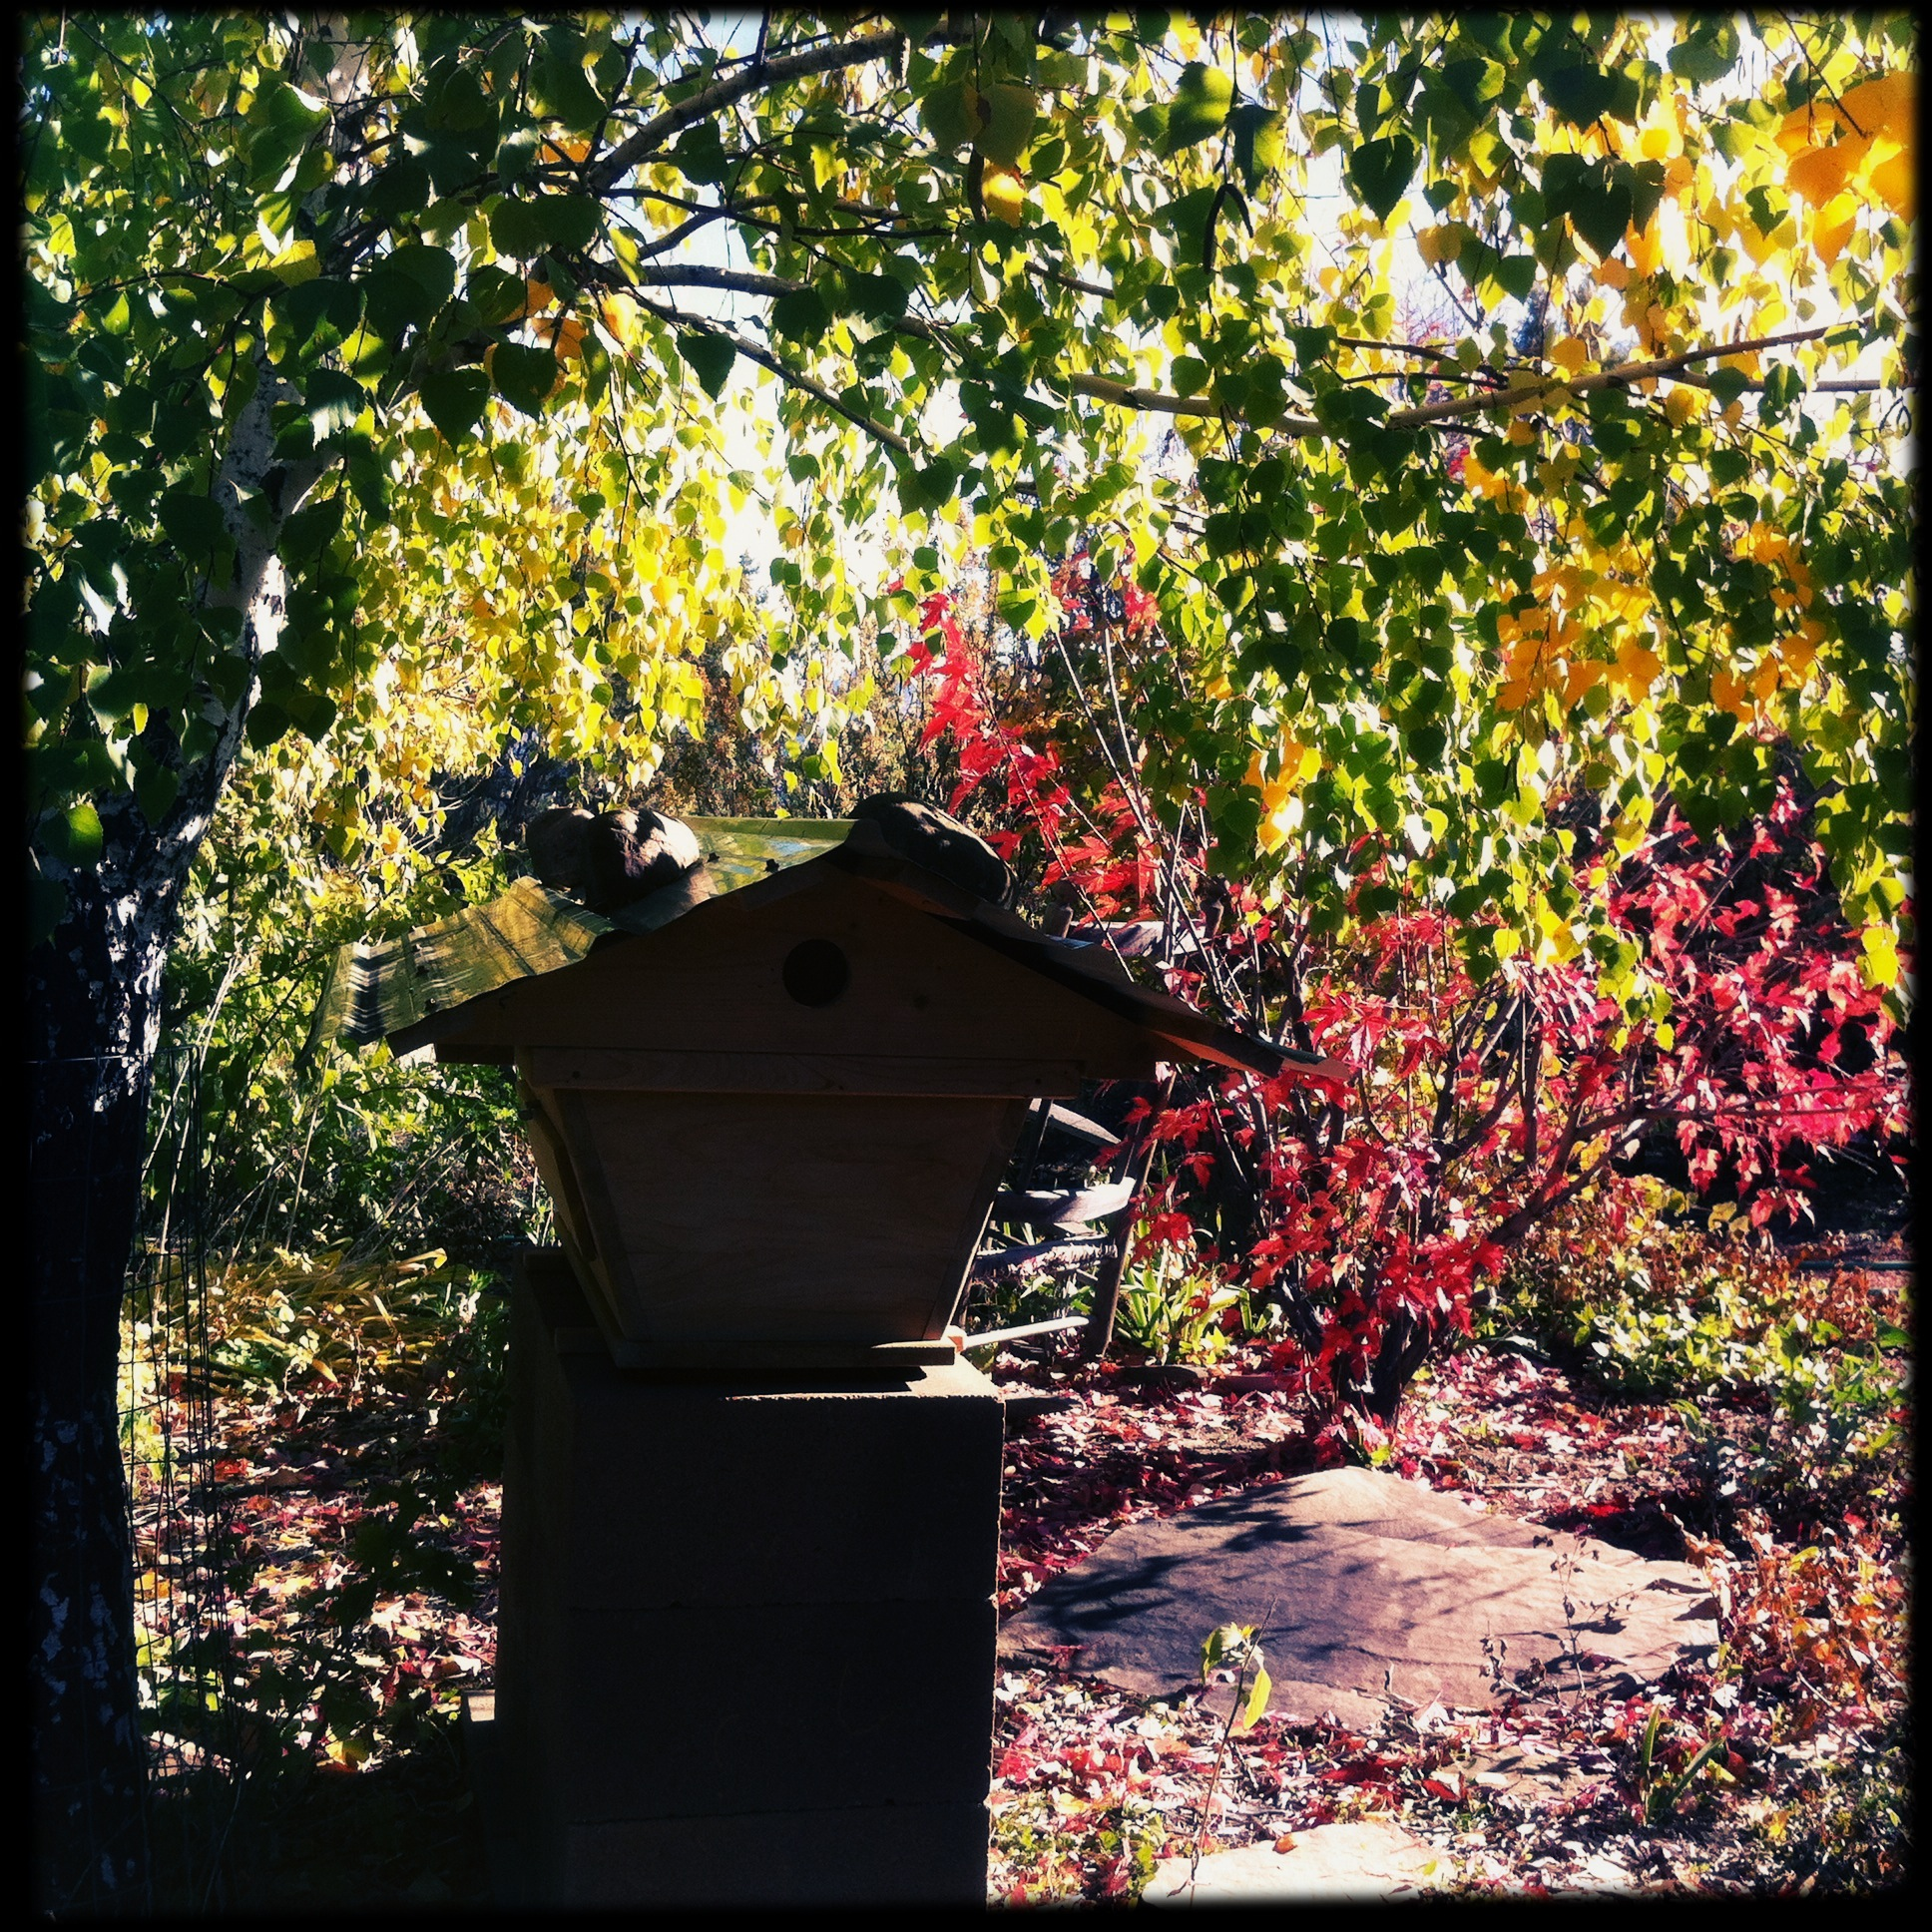 October 13, the maple in the bee bed has lost half its leaves, as the birch begins to turn yellow.